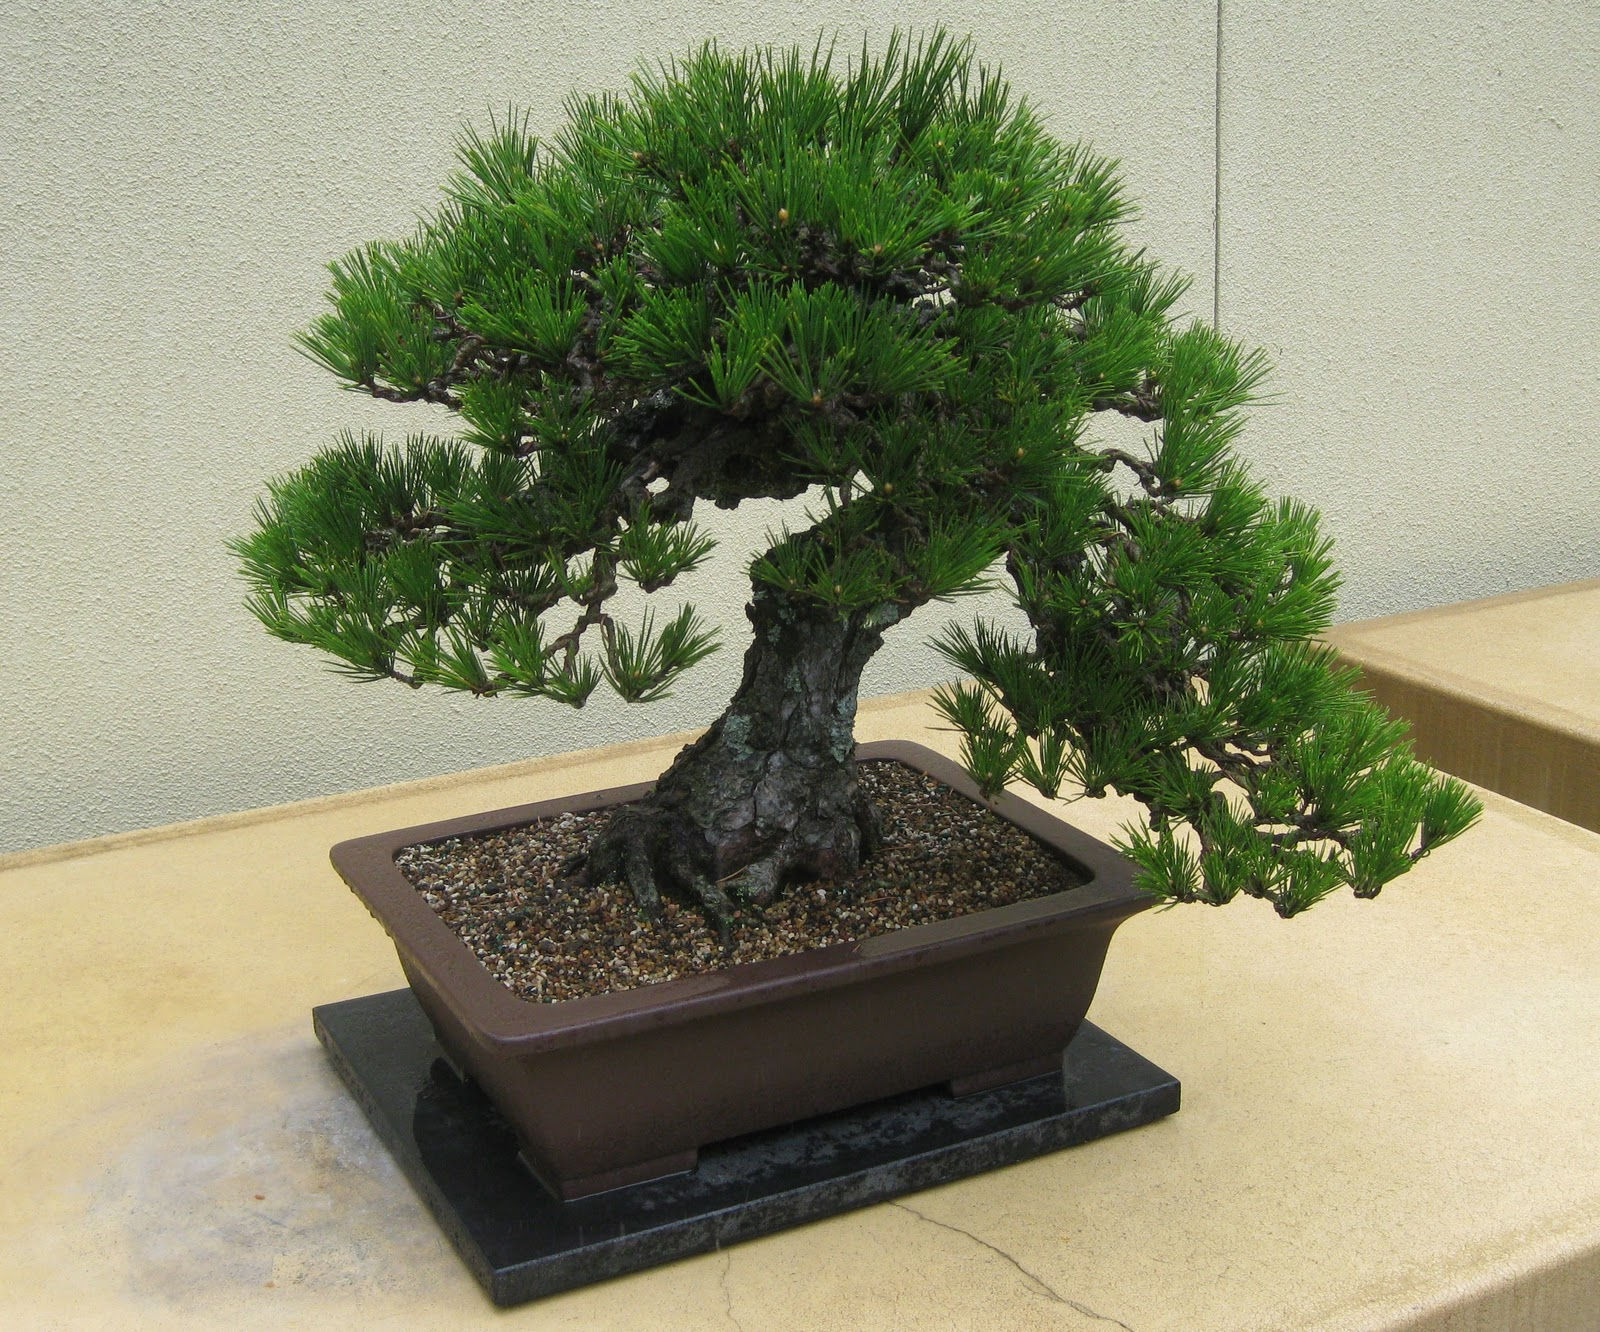 Wall Mail Collection Of Bonsai Pic